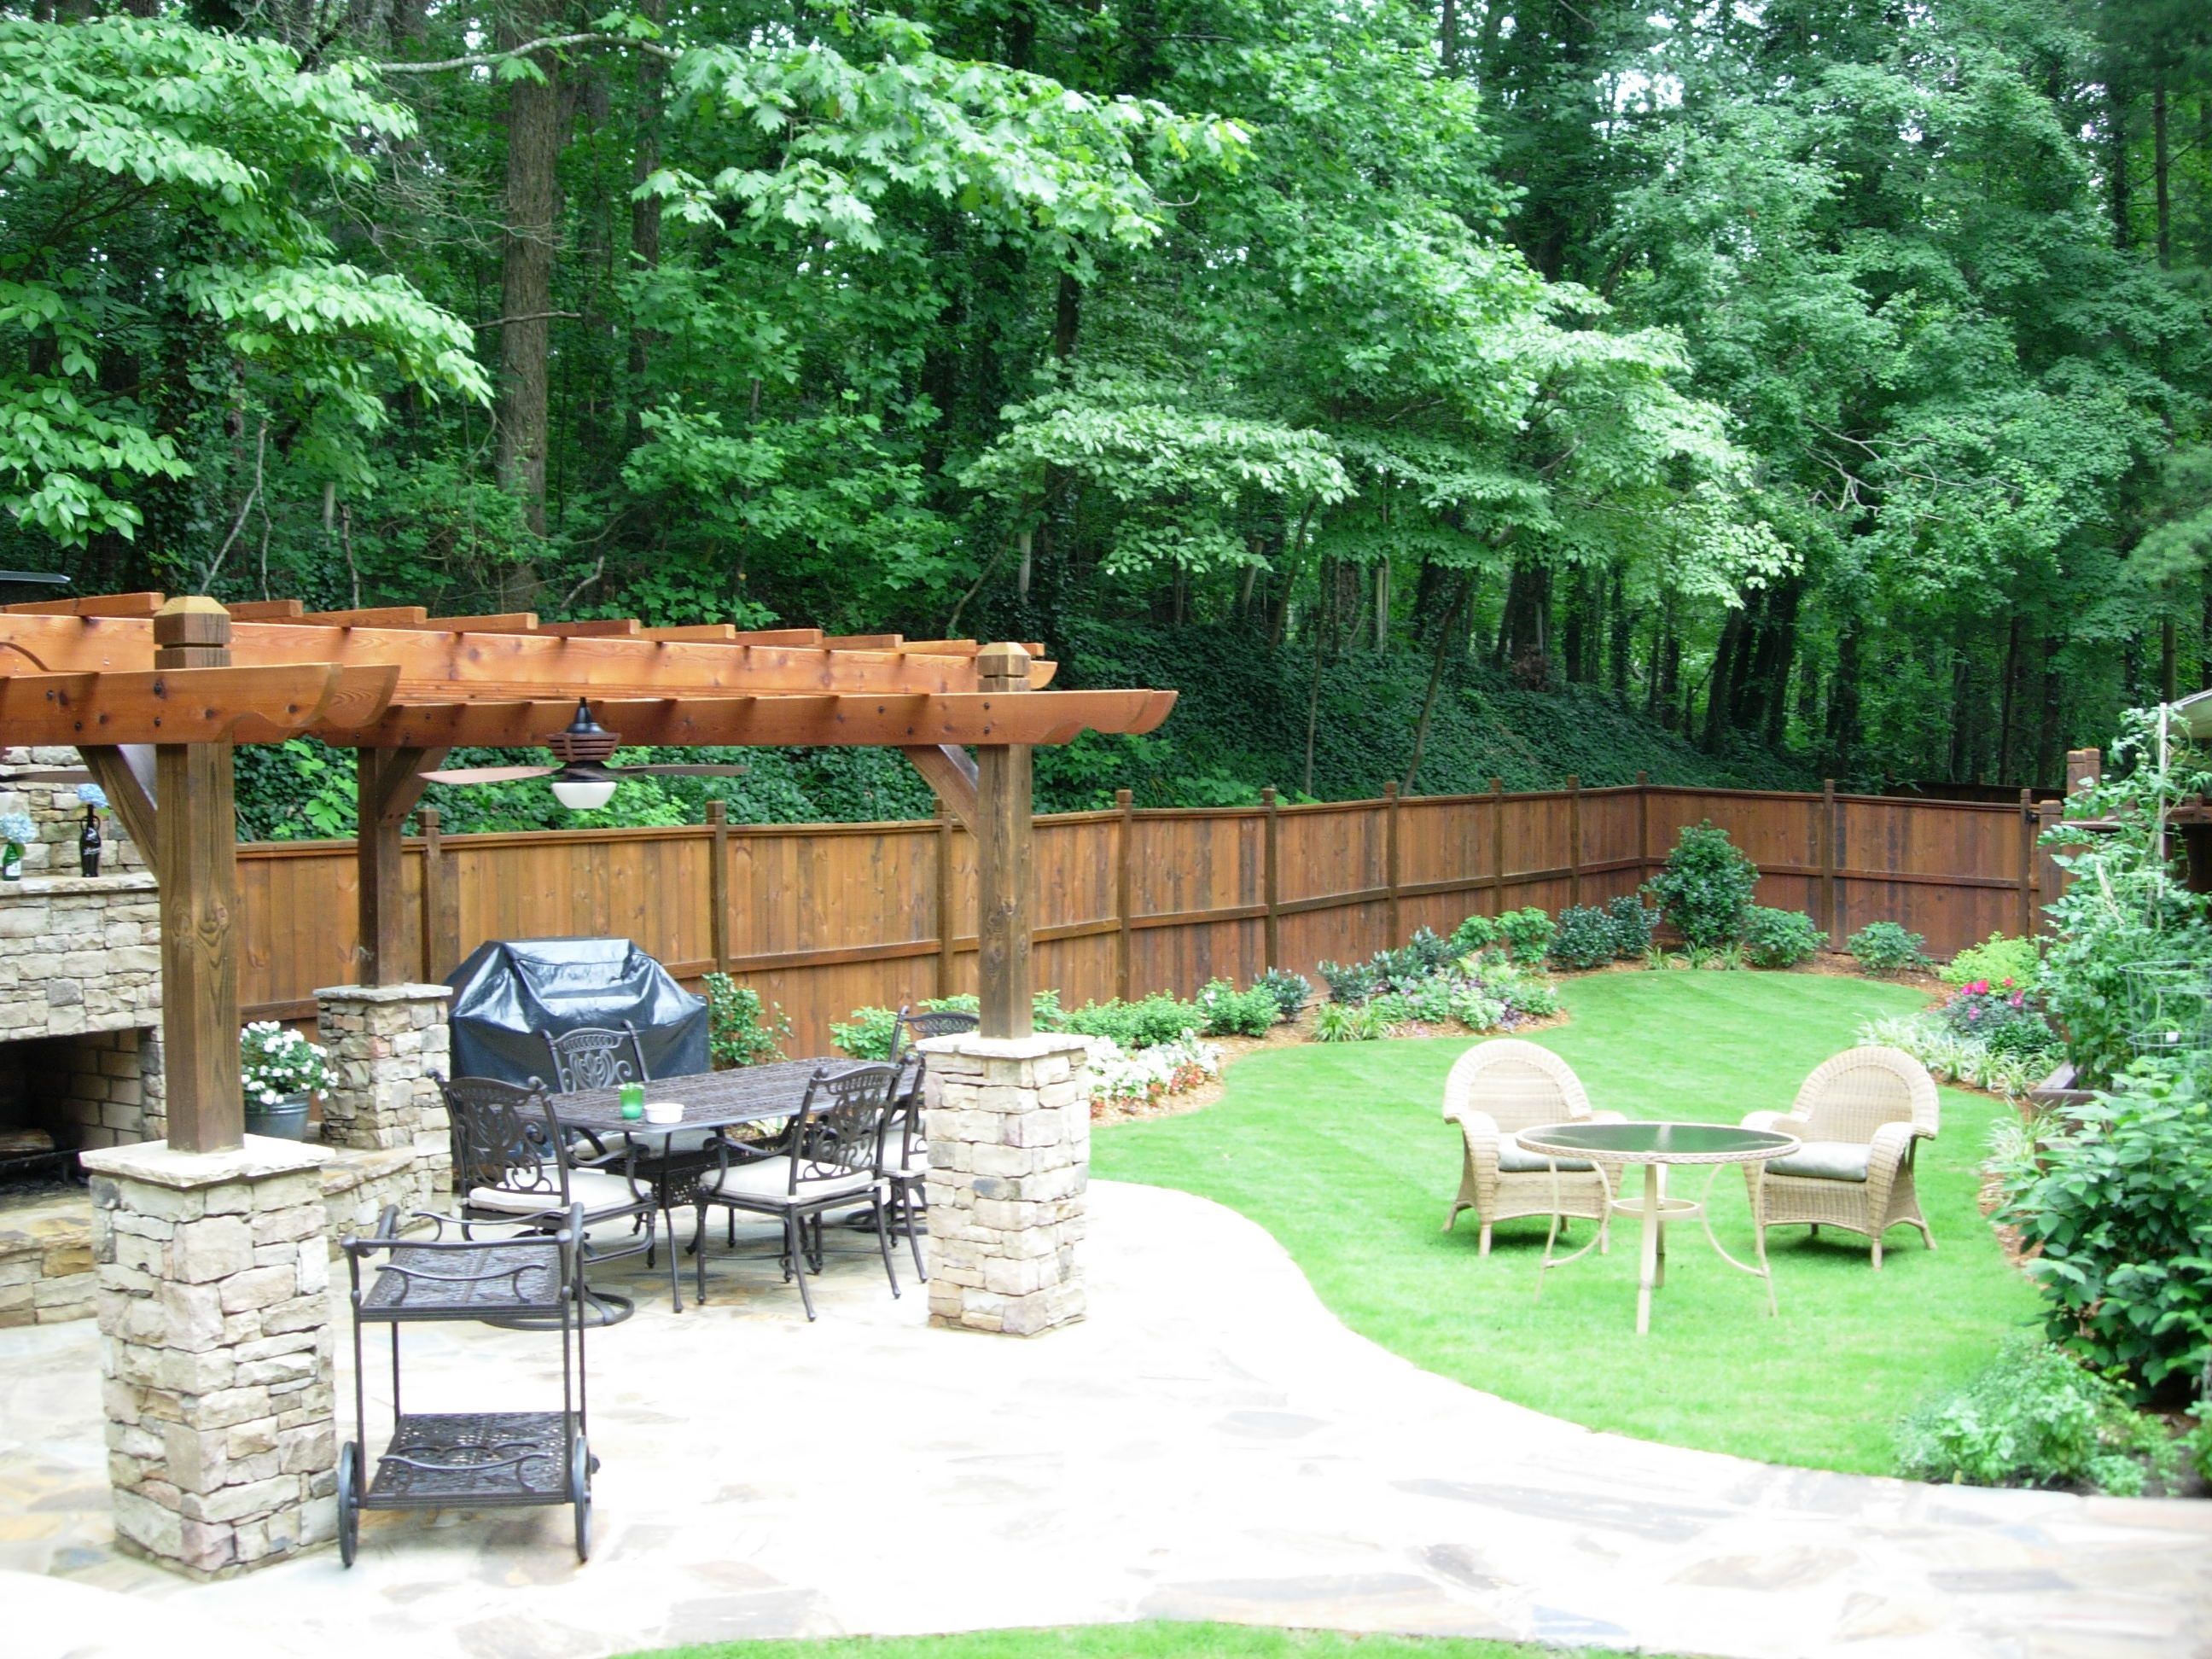 This Backyard Design Includes A New Cedar Fence Around The Entire Yard. A  Large Crab Orchard Stone Patio With A Pergola Over The Patio Near The  Outdoor ...